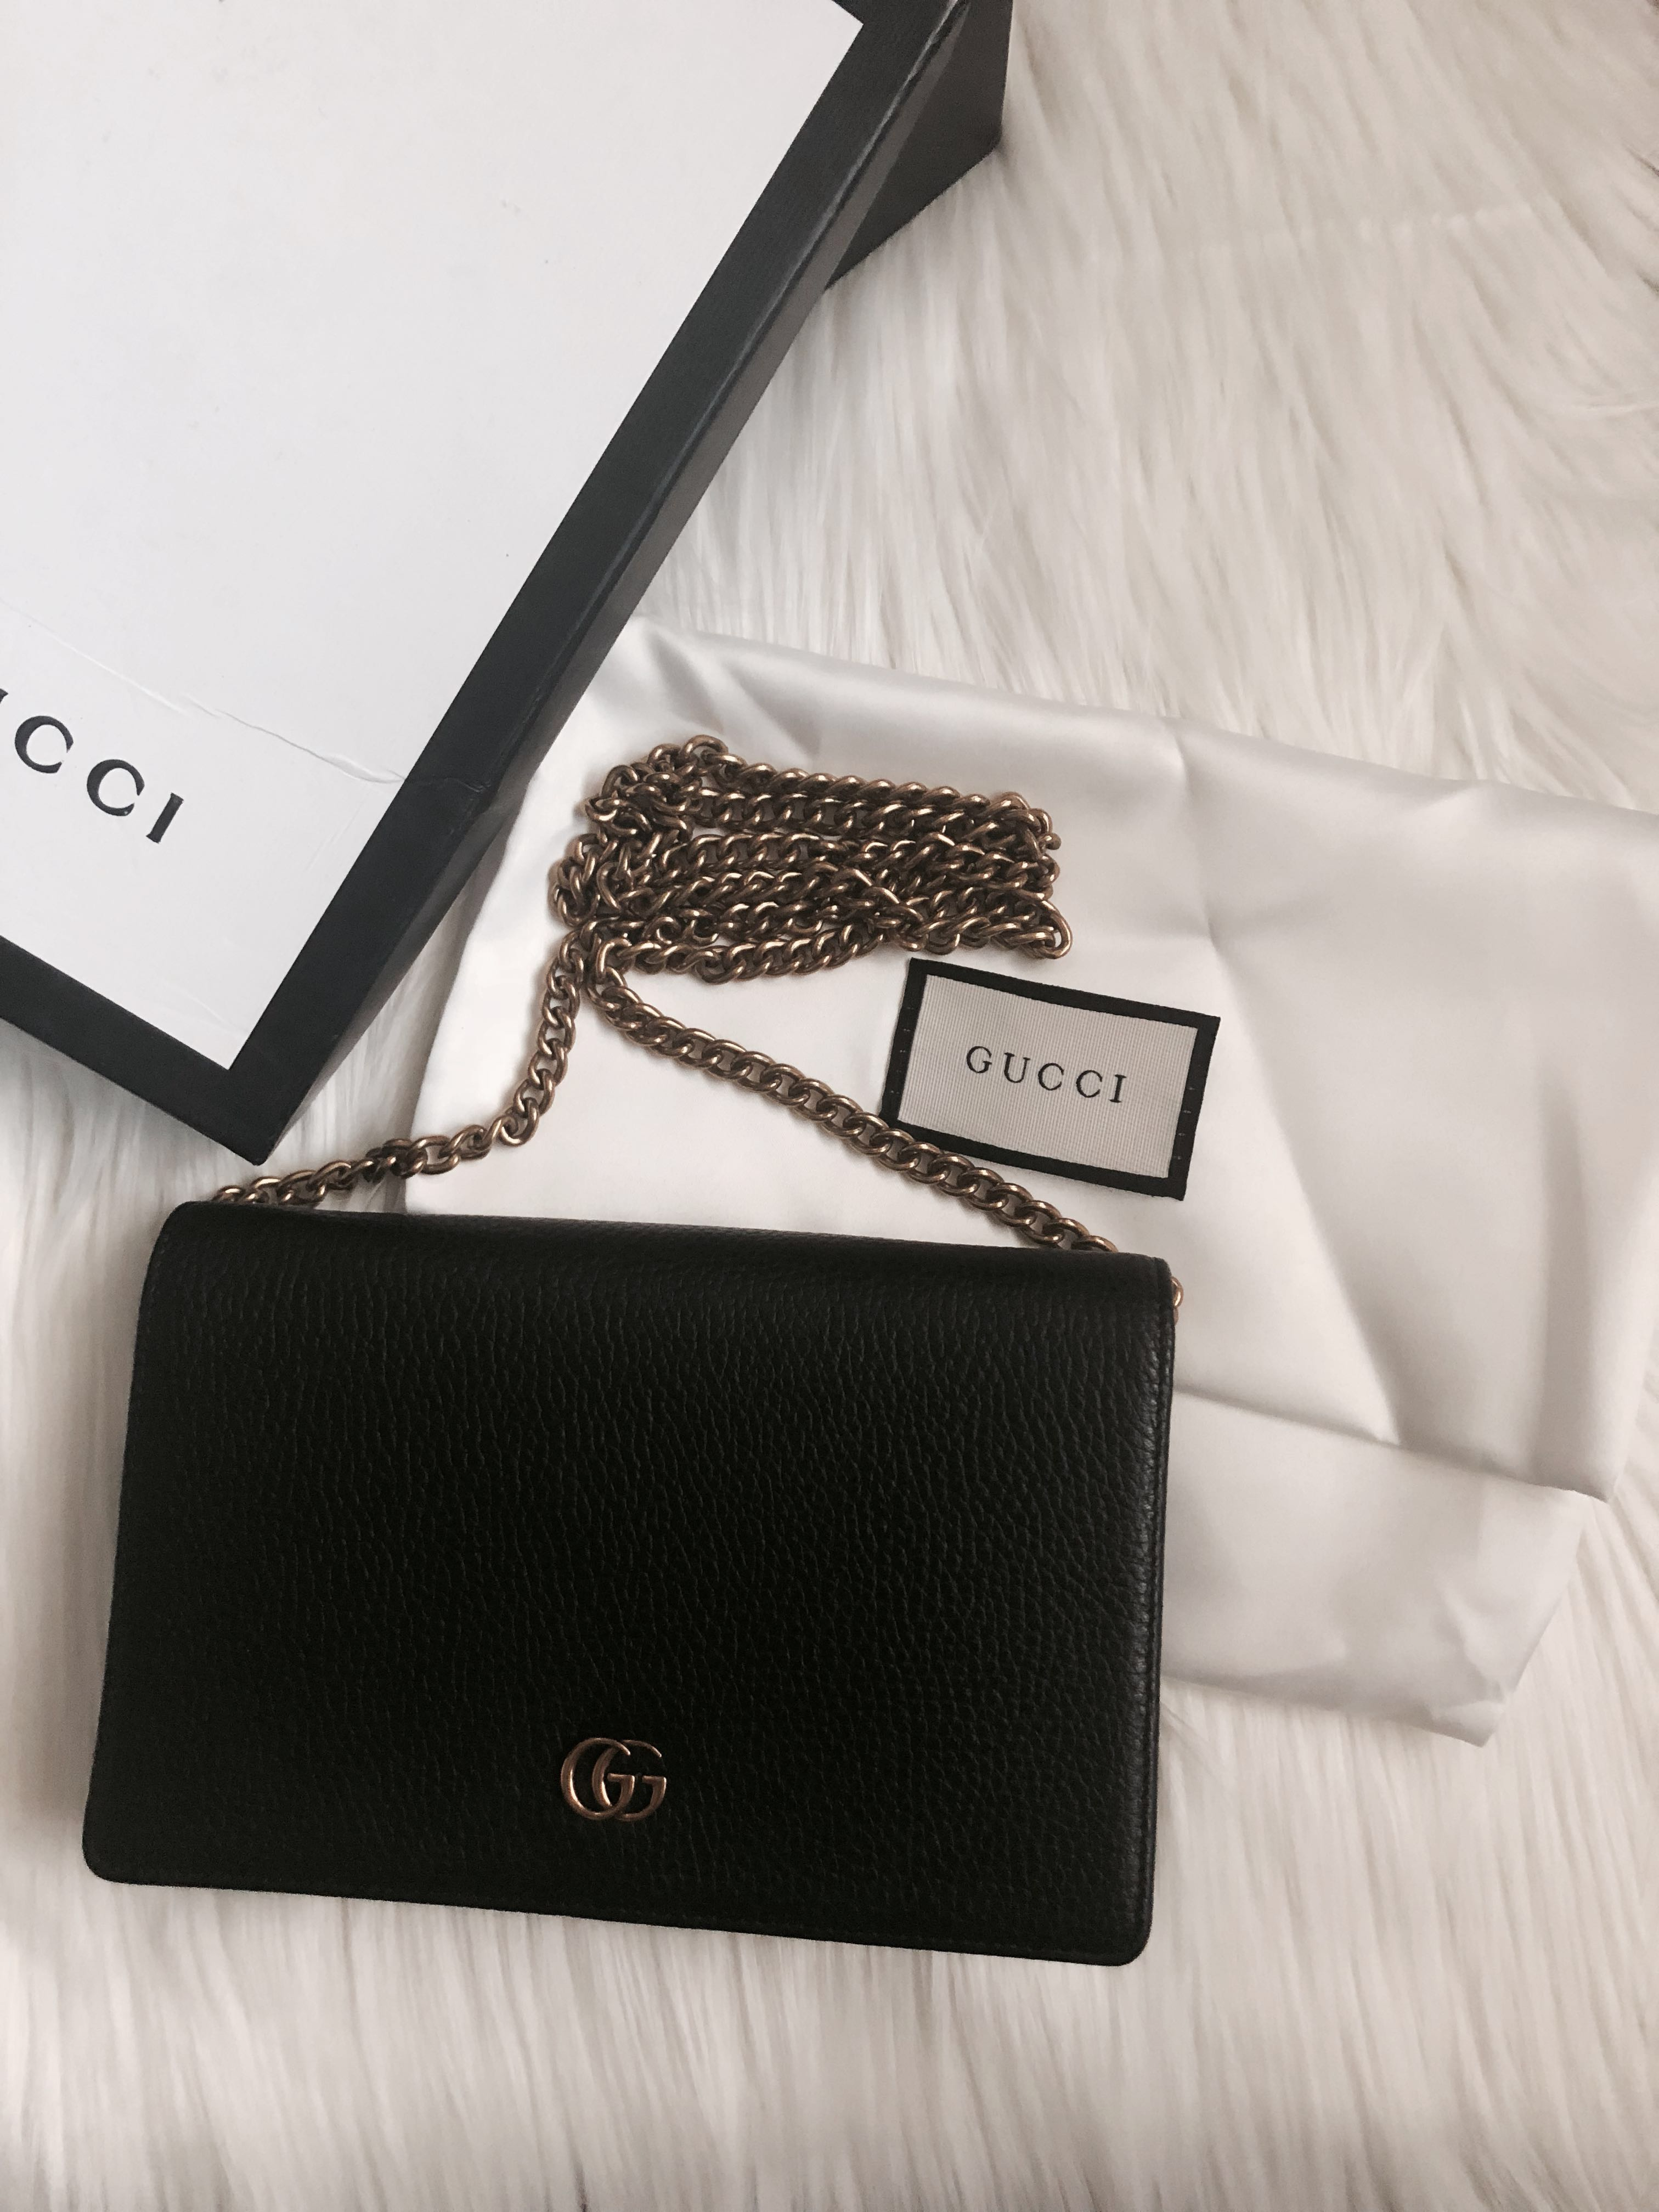 2a84a49fd667 Gucci Crossbody Party Bag, Luxury, Bags & Wallets on Carousell